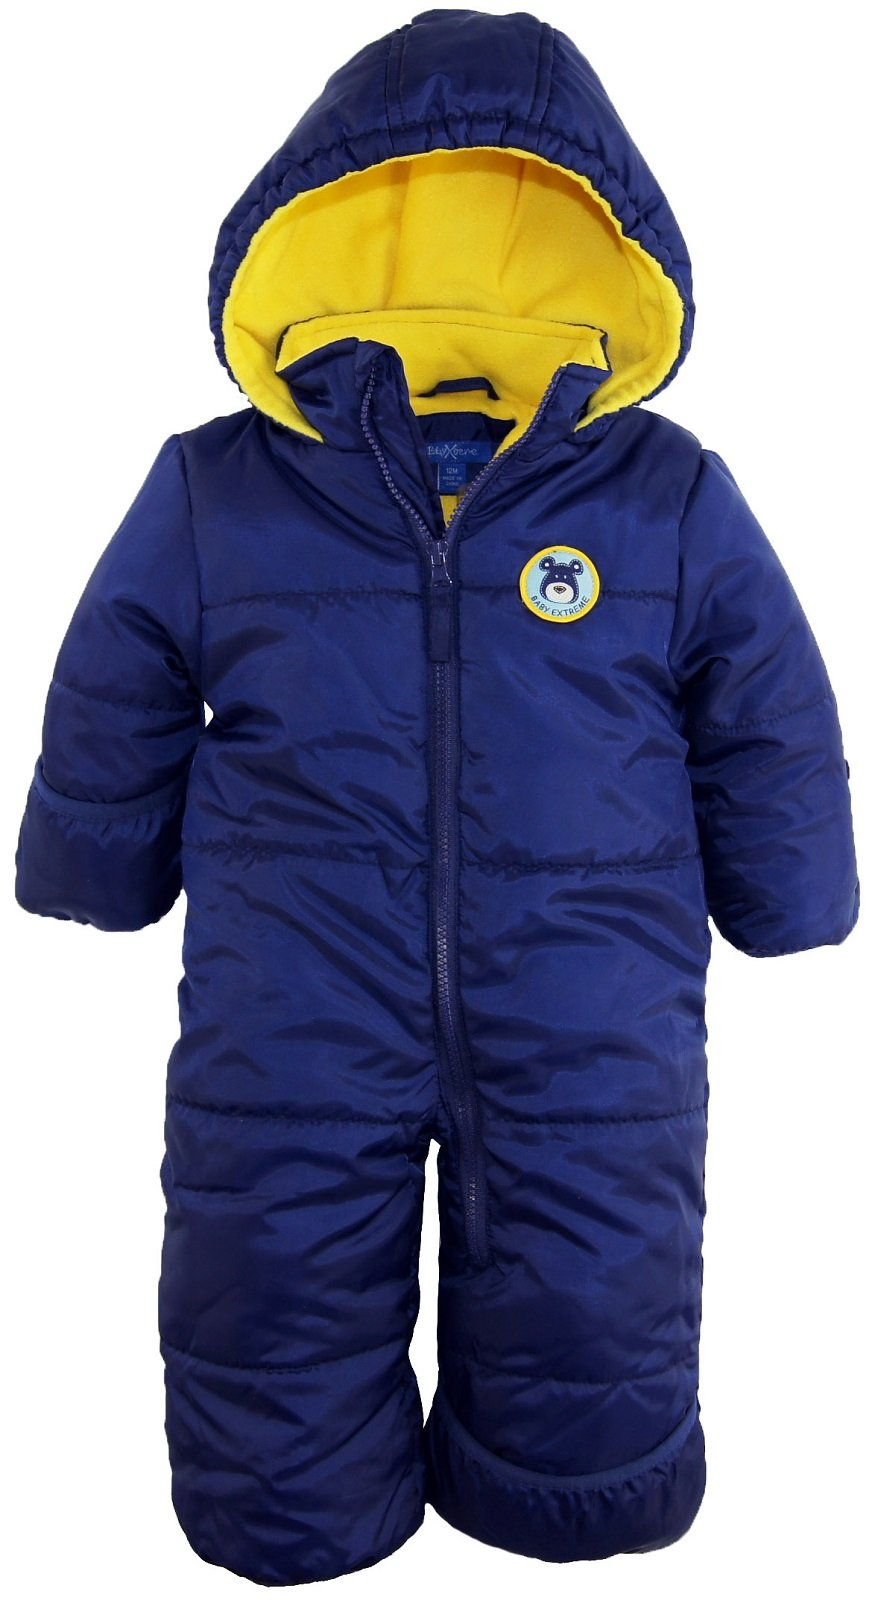 iXtreme Baby Boys Infant Cute Teddy Bear One Piece Puffer Winter Snowsuit, Navy, 24 Months